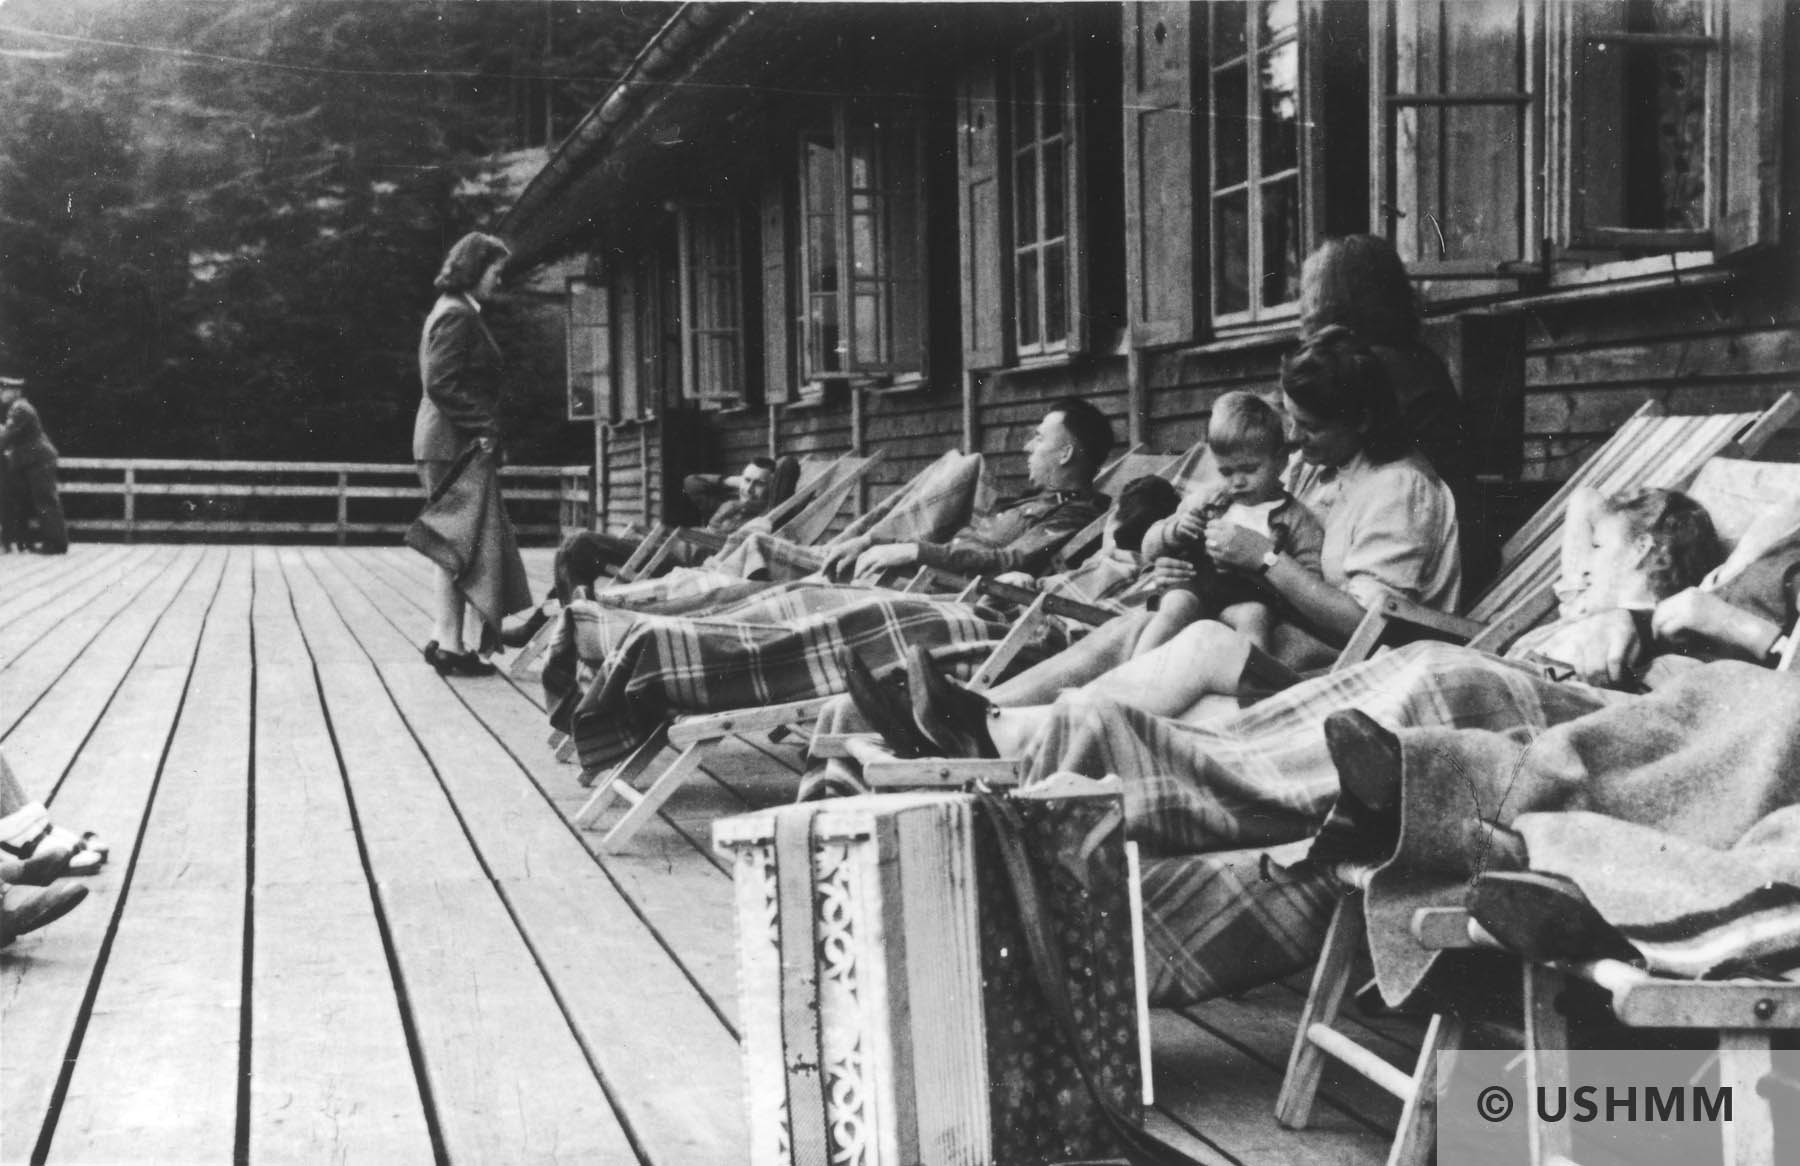 SS officers together with women and a baby relax on lounge chairs on a deck in Solahütte. USHMM 34583